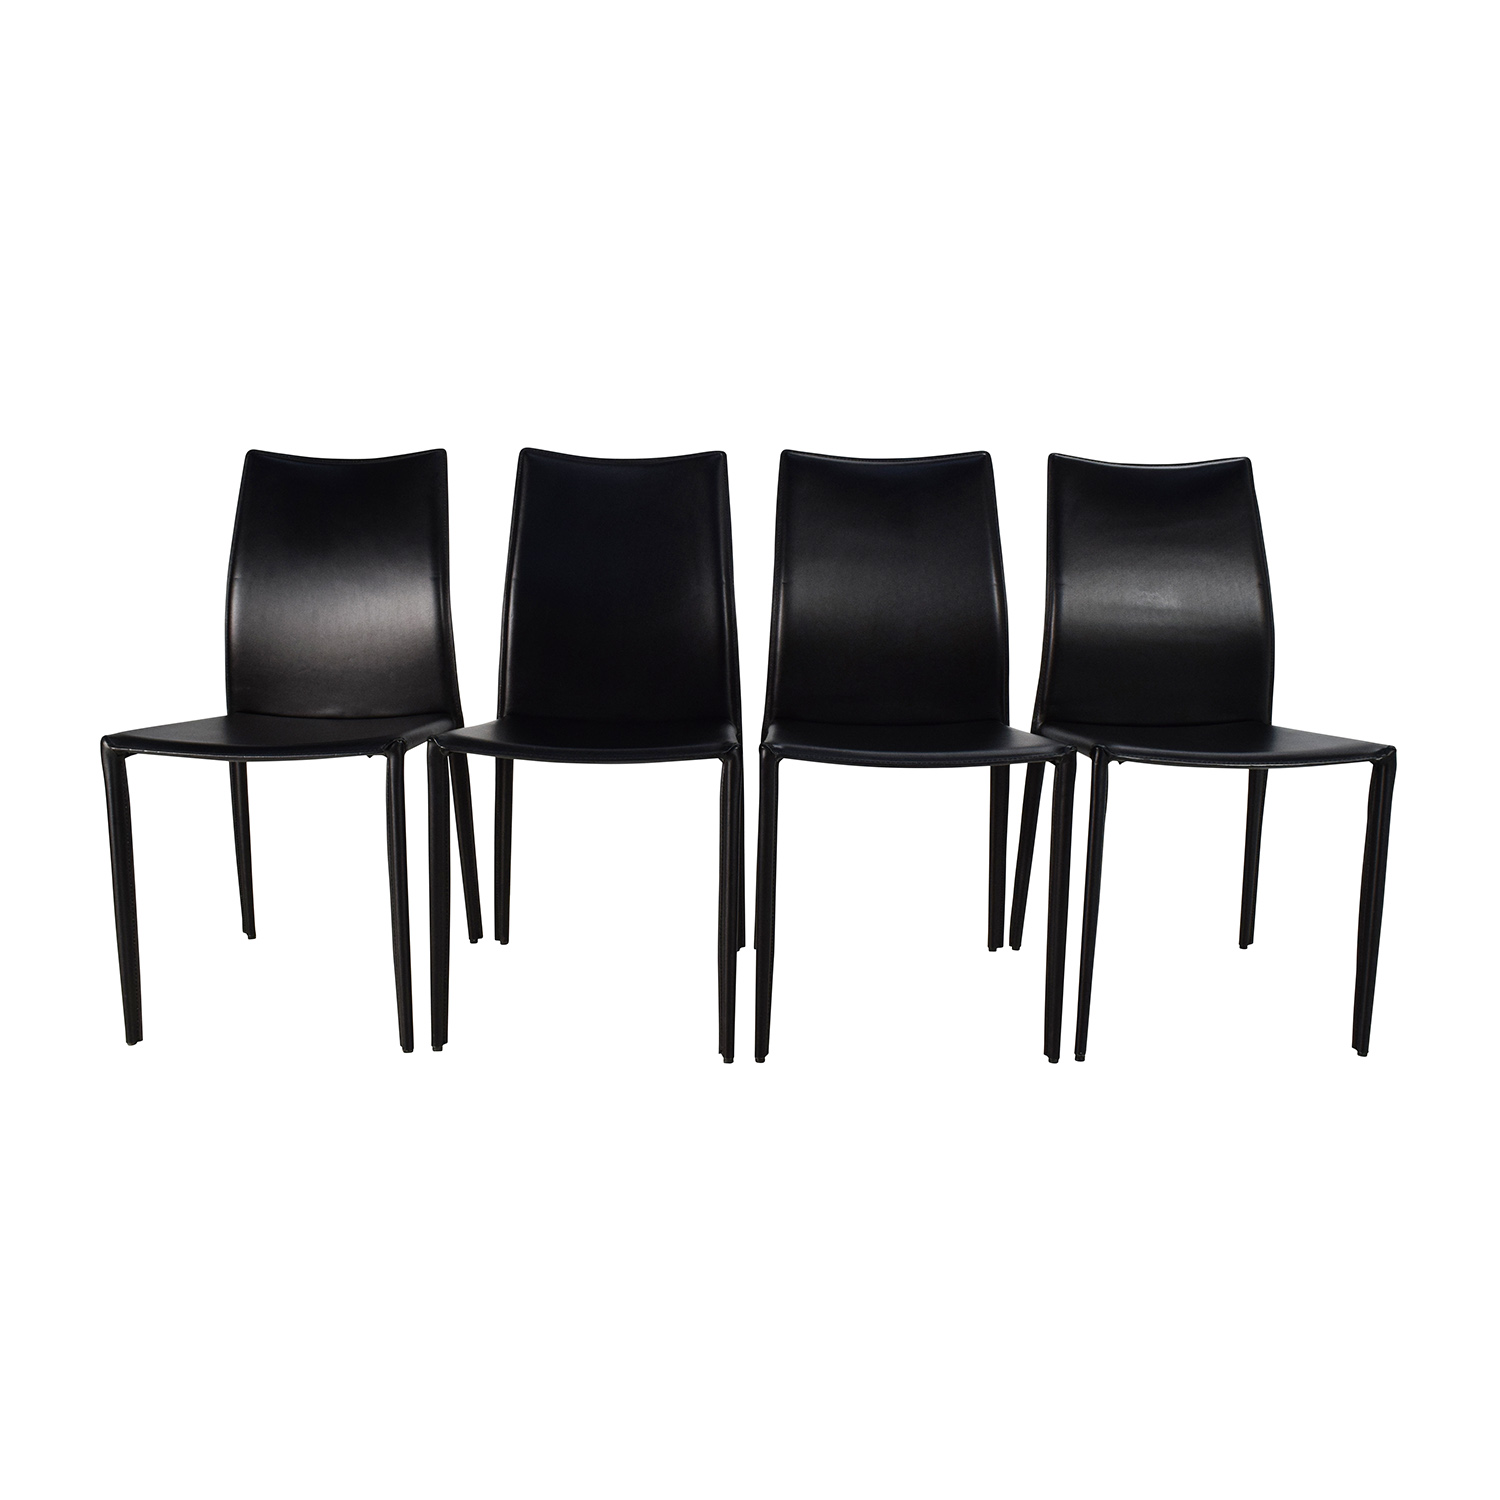 Modani Modani Bellagio Contemporary Dining Chair Set nyc